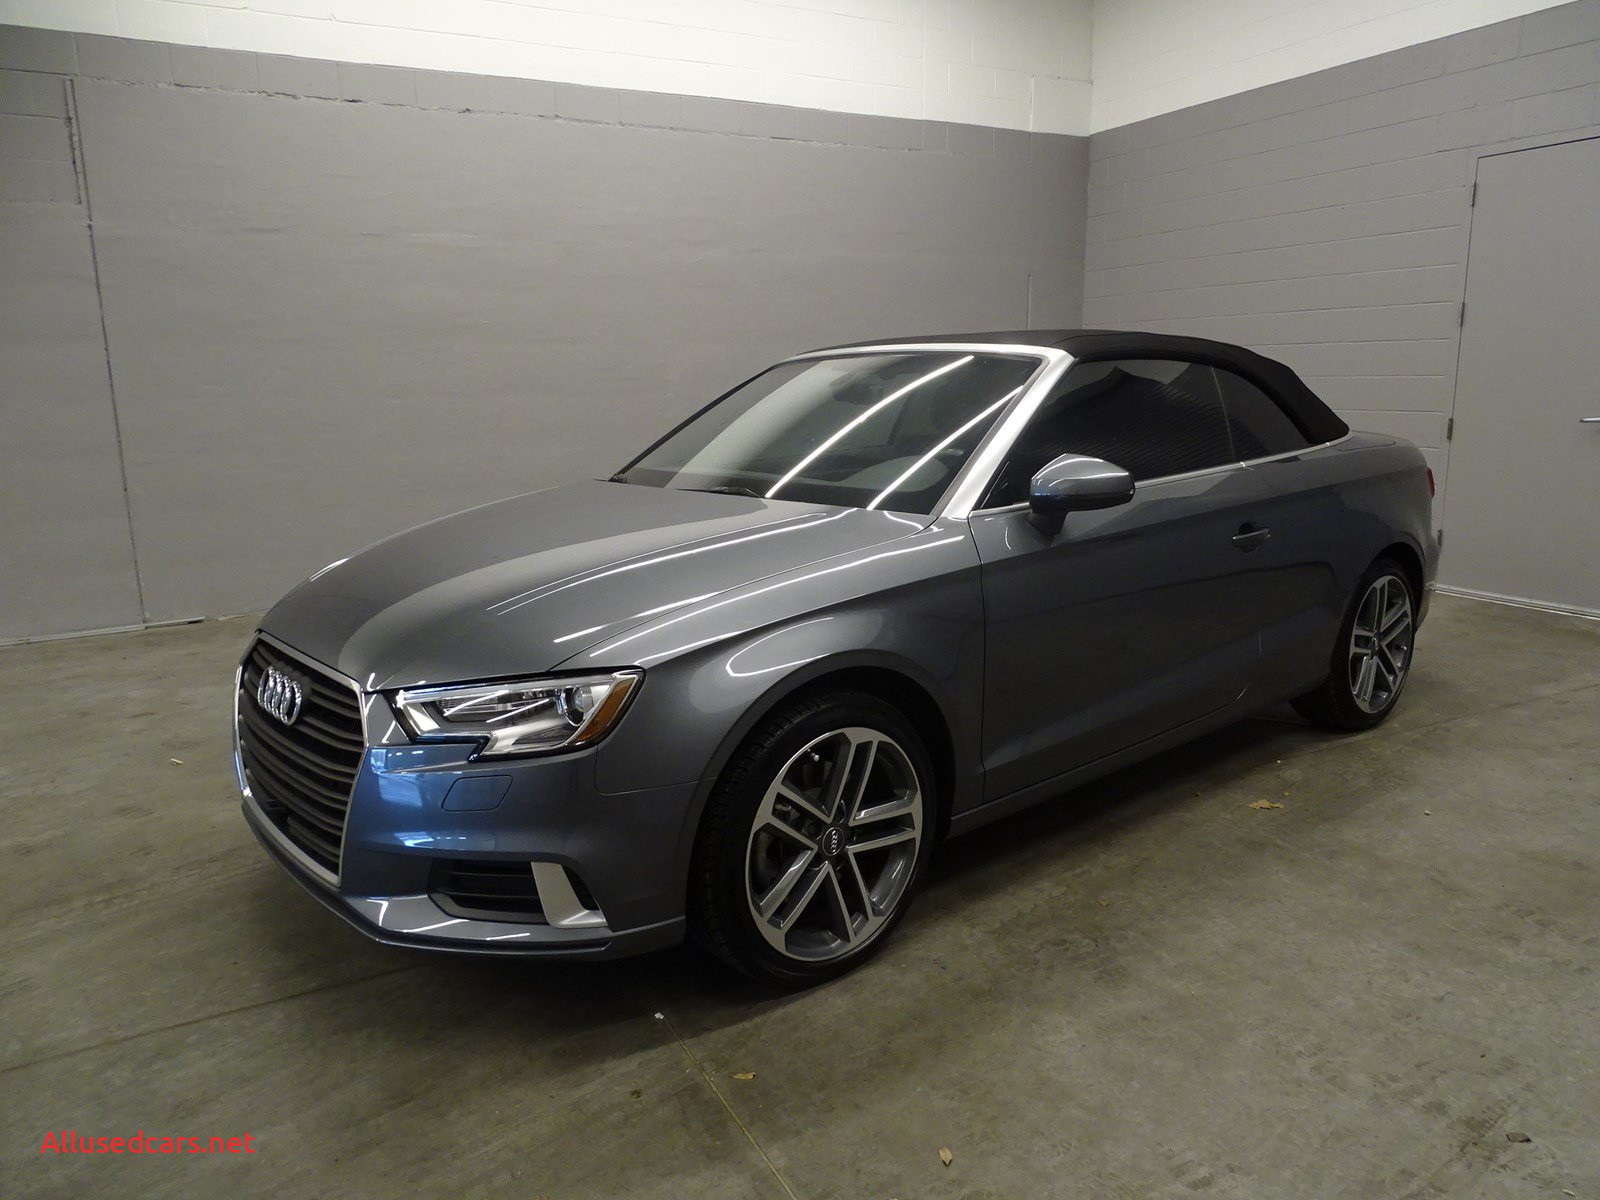 Audi A3 Hatchback Awesome Certified Pre Owned 2017 Audi A3 Cabriolet Premium Fwd Convertible